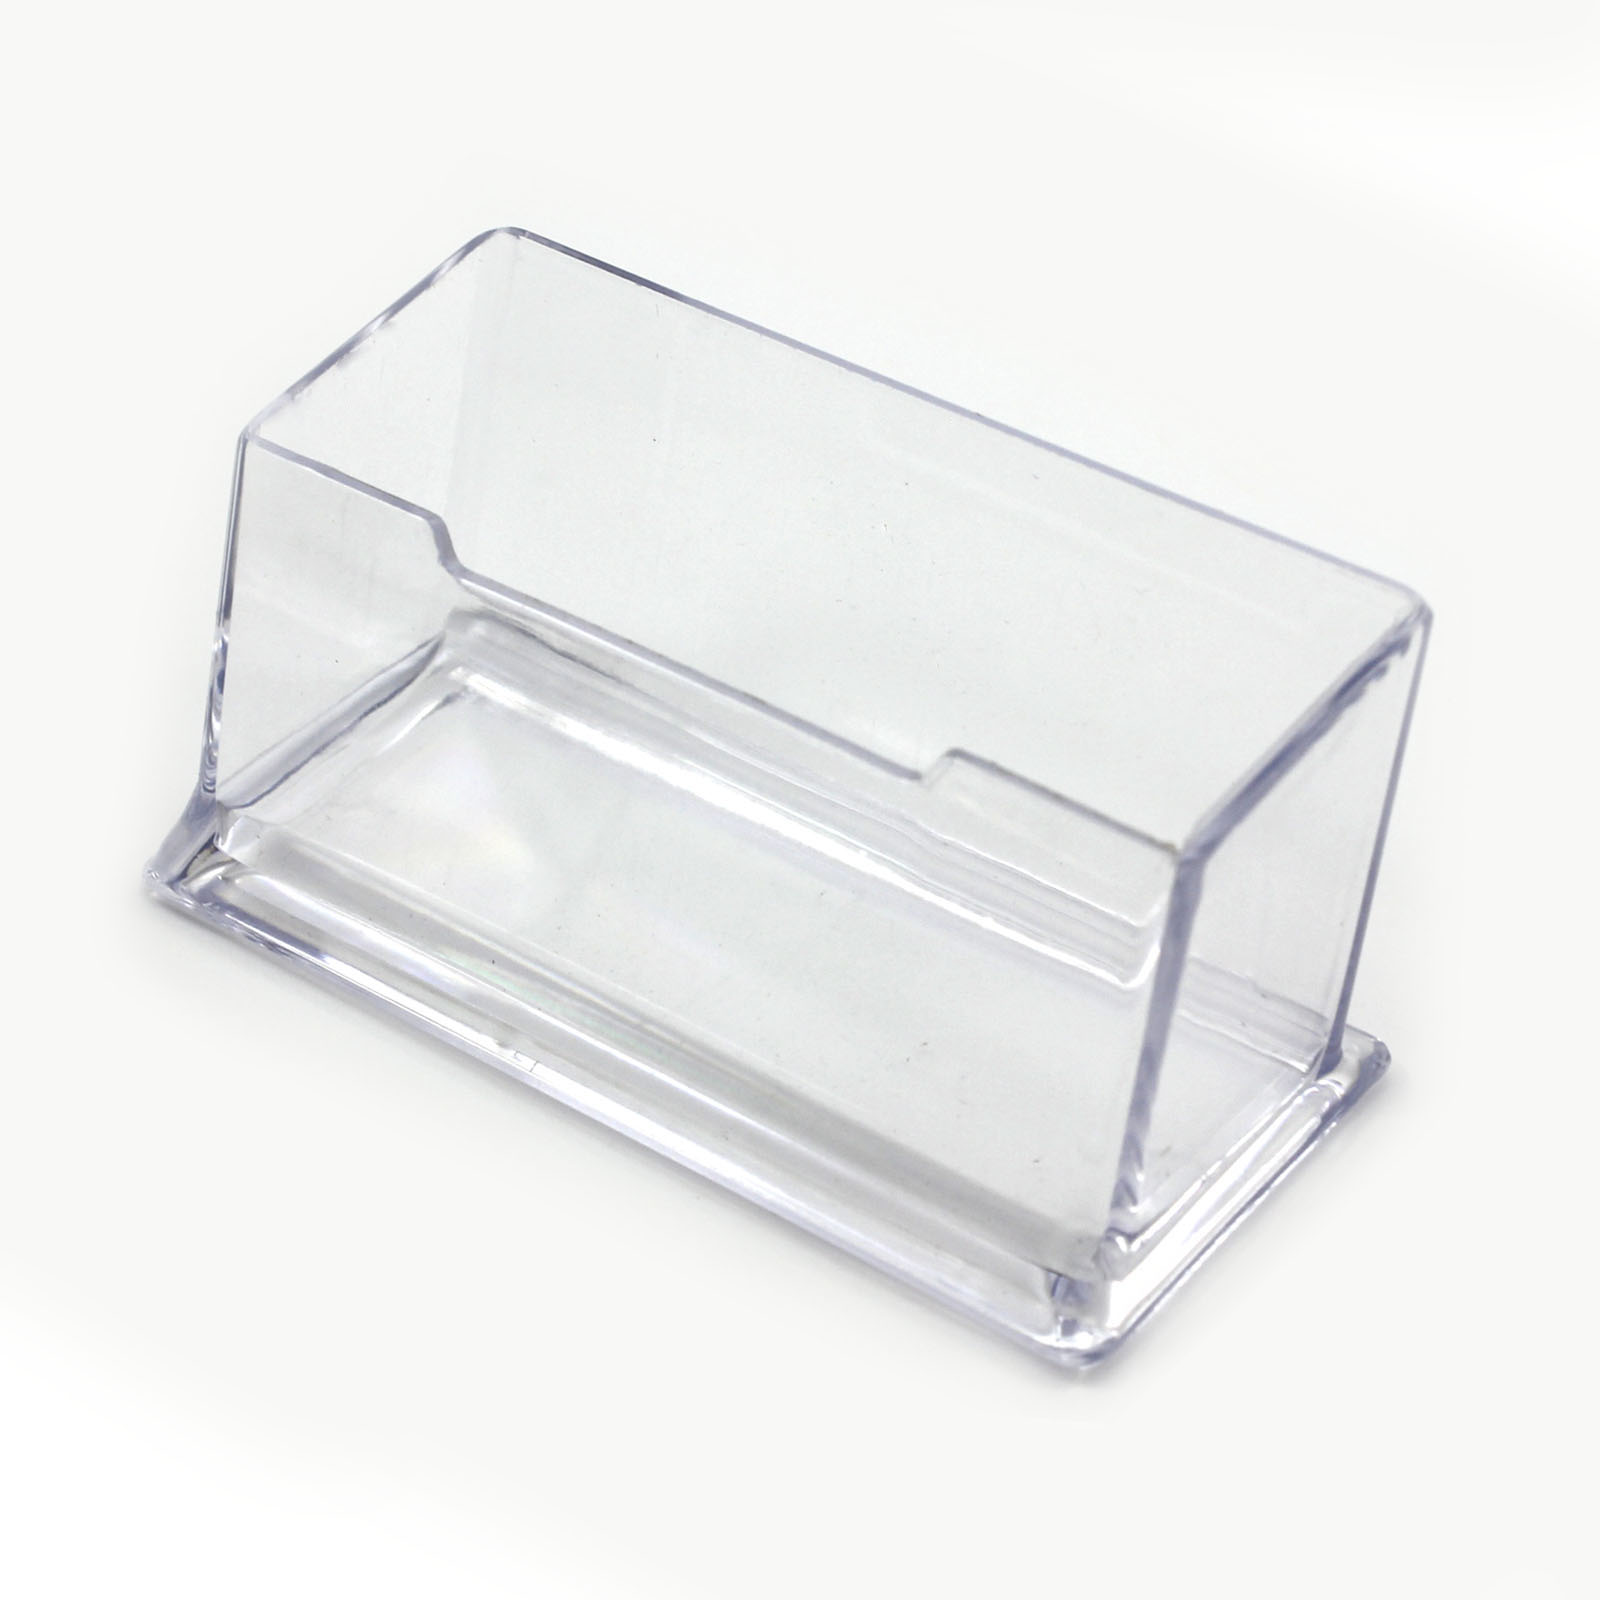 acrylic business card holders clear business card holder clear